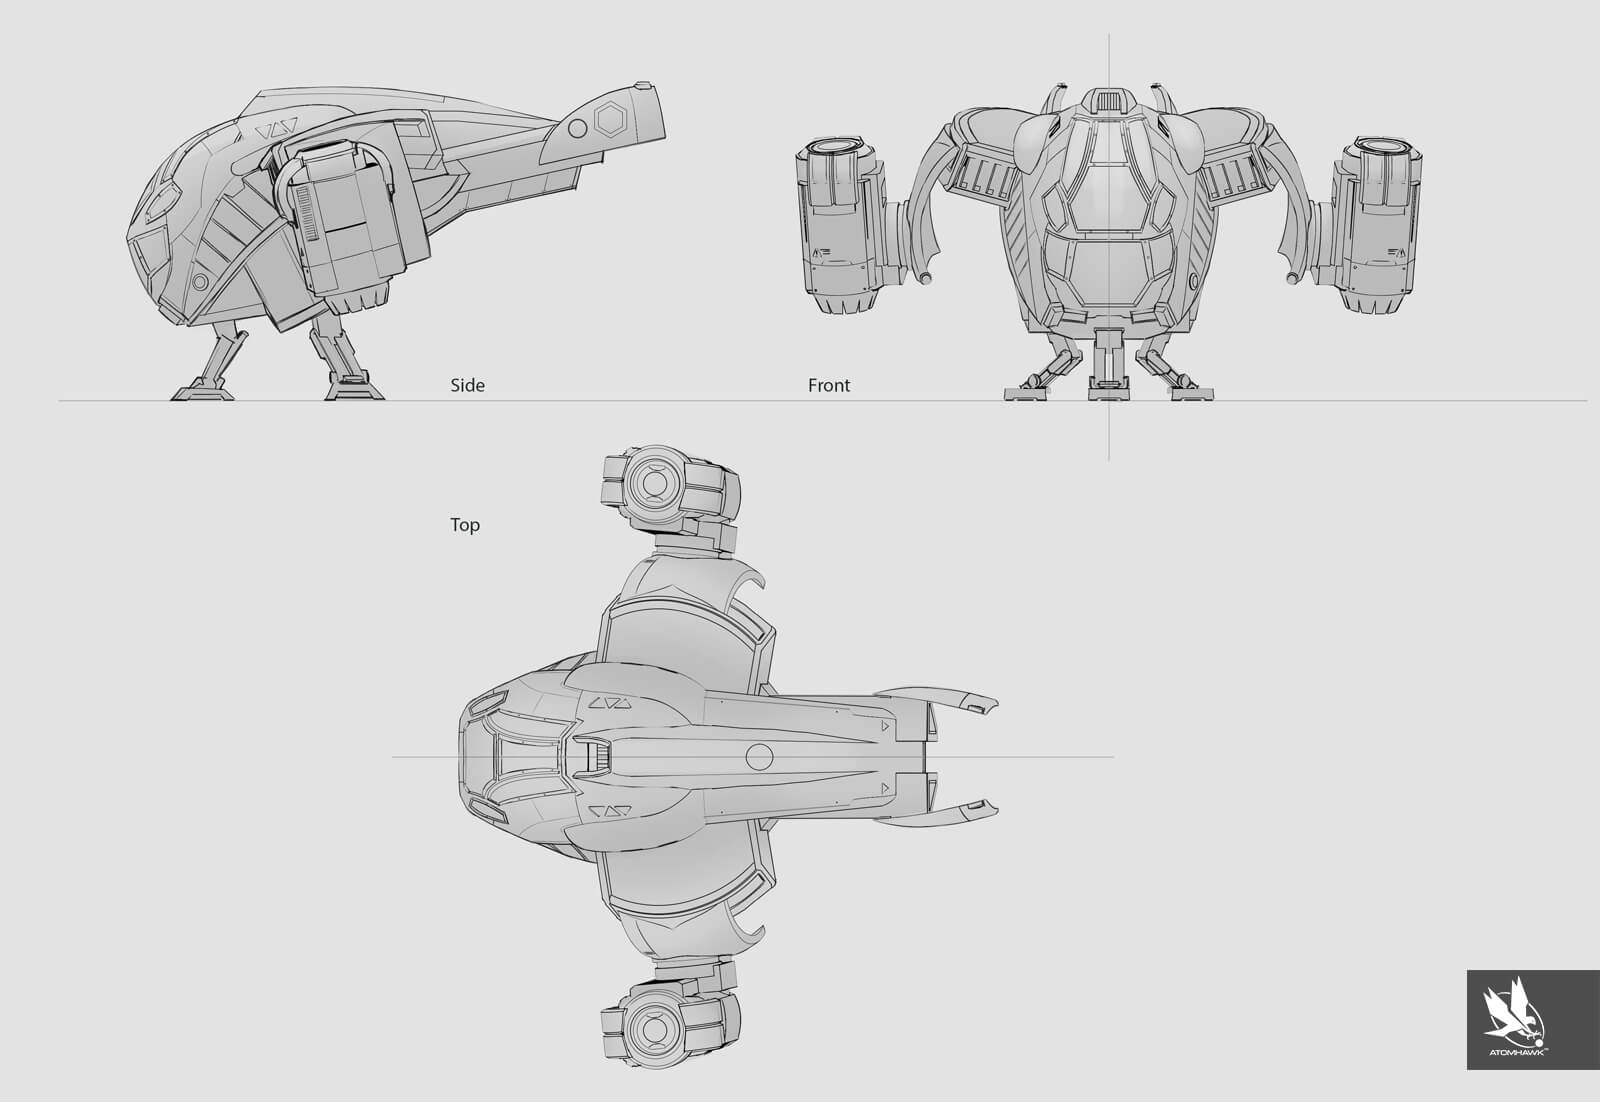 Dropship Orthographic - Concept Art for Unity 3D Game Kit